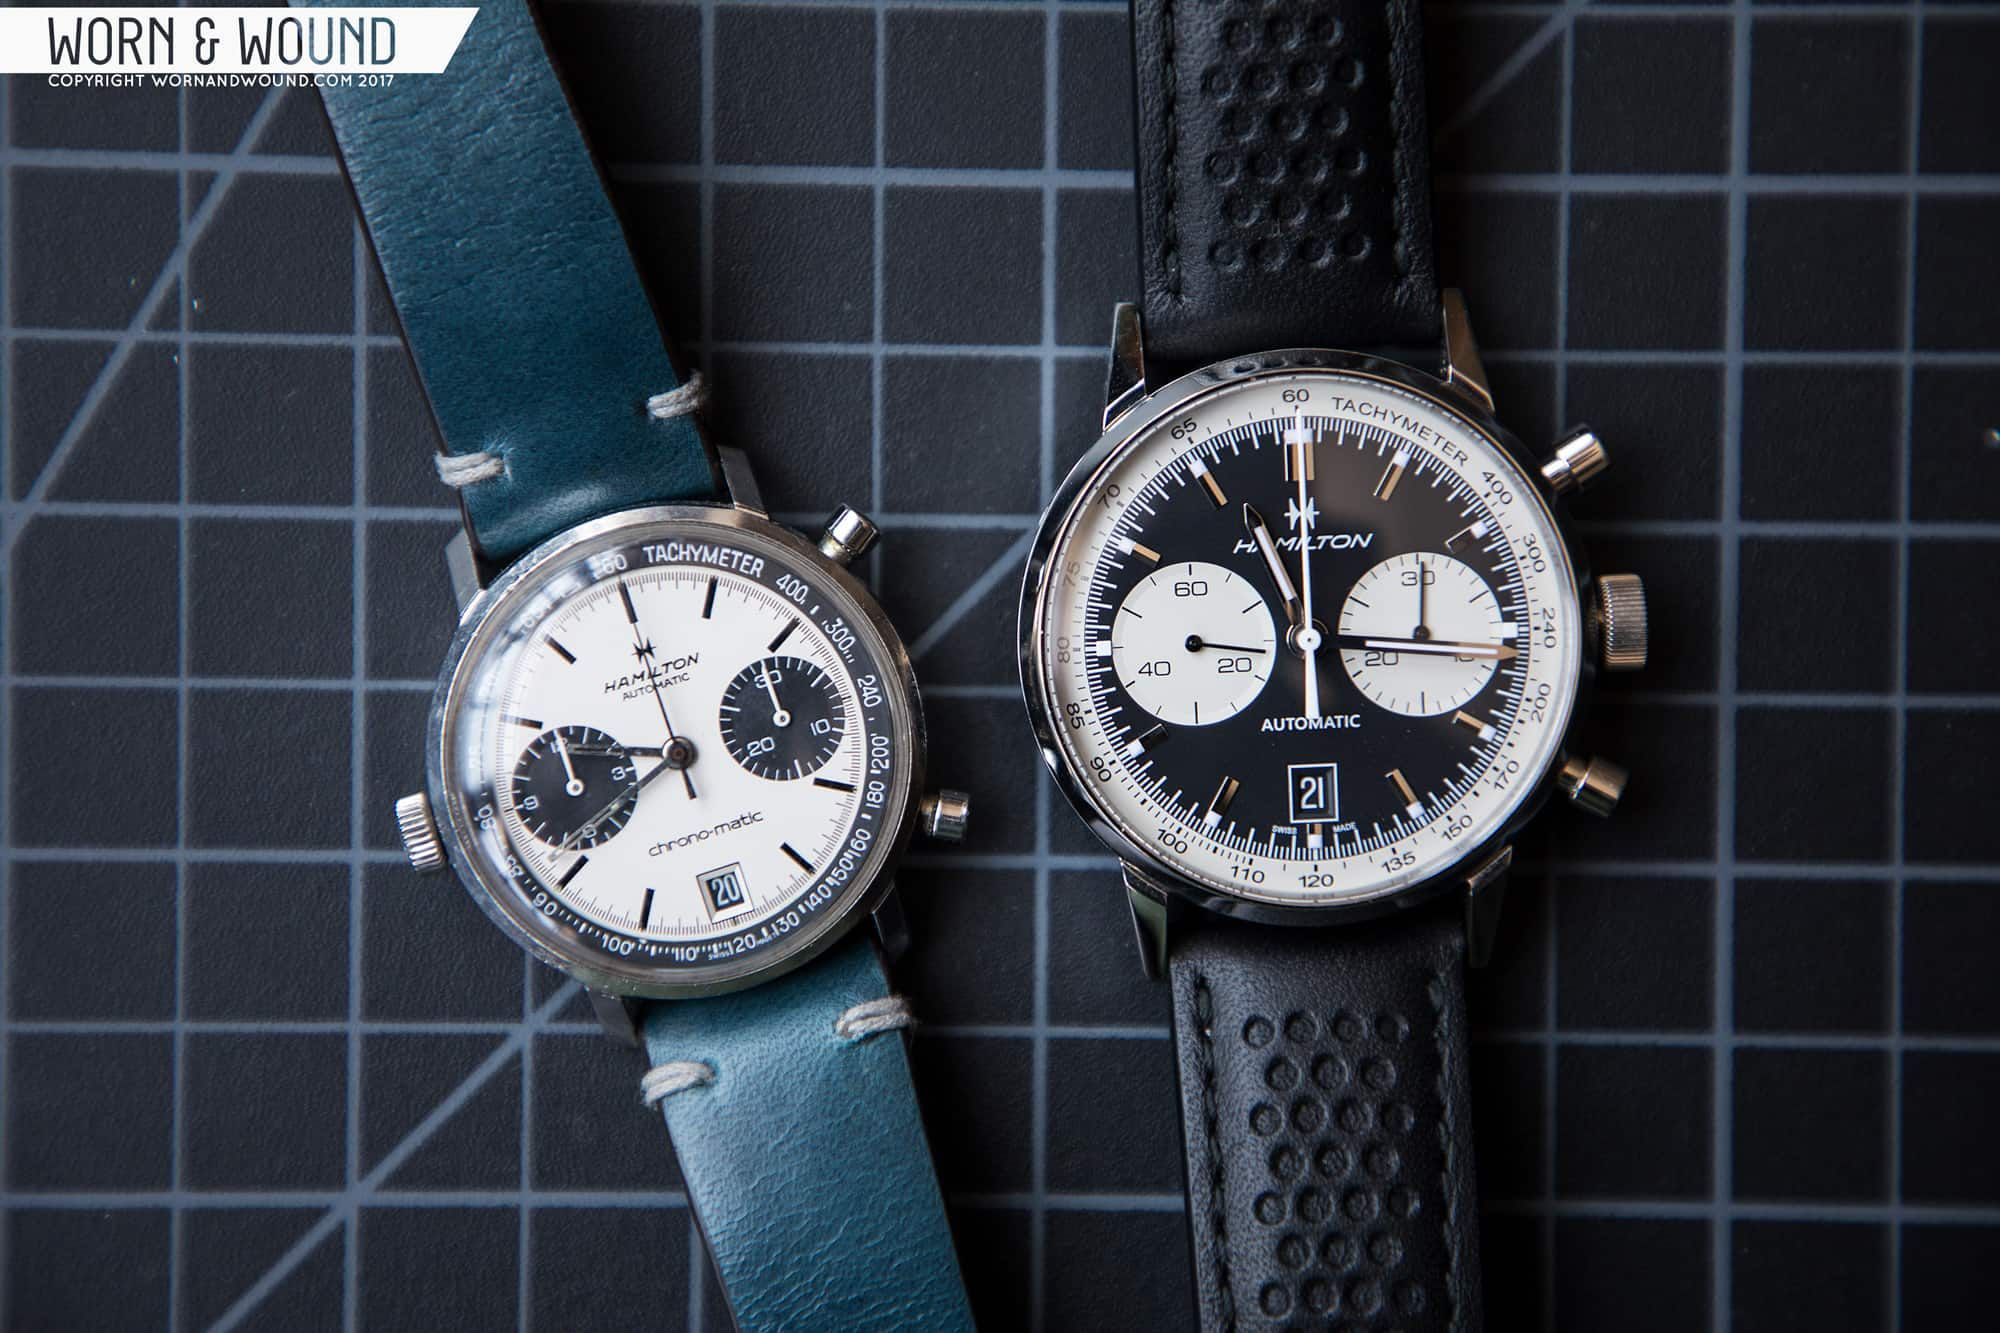 Hamilton Intra Matic 68 Auto Chrono Review Worn Wound Chrono Watches Chrono Watches